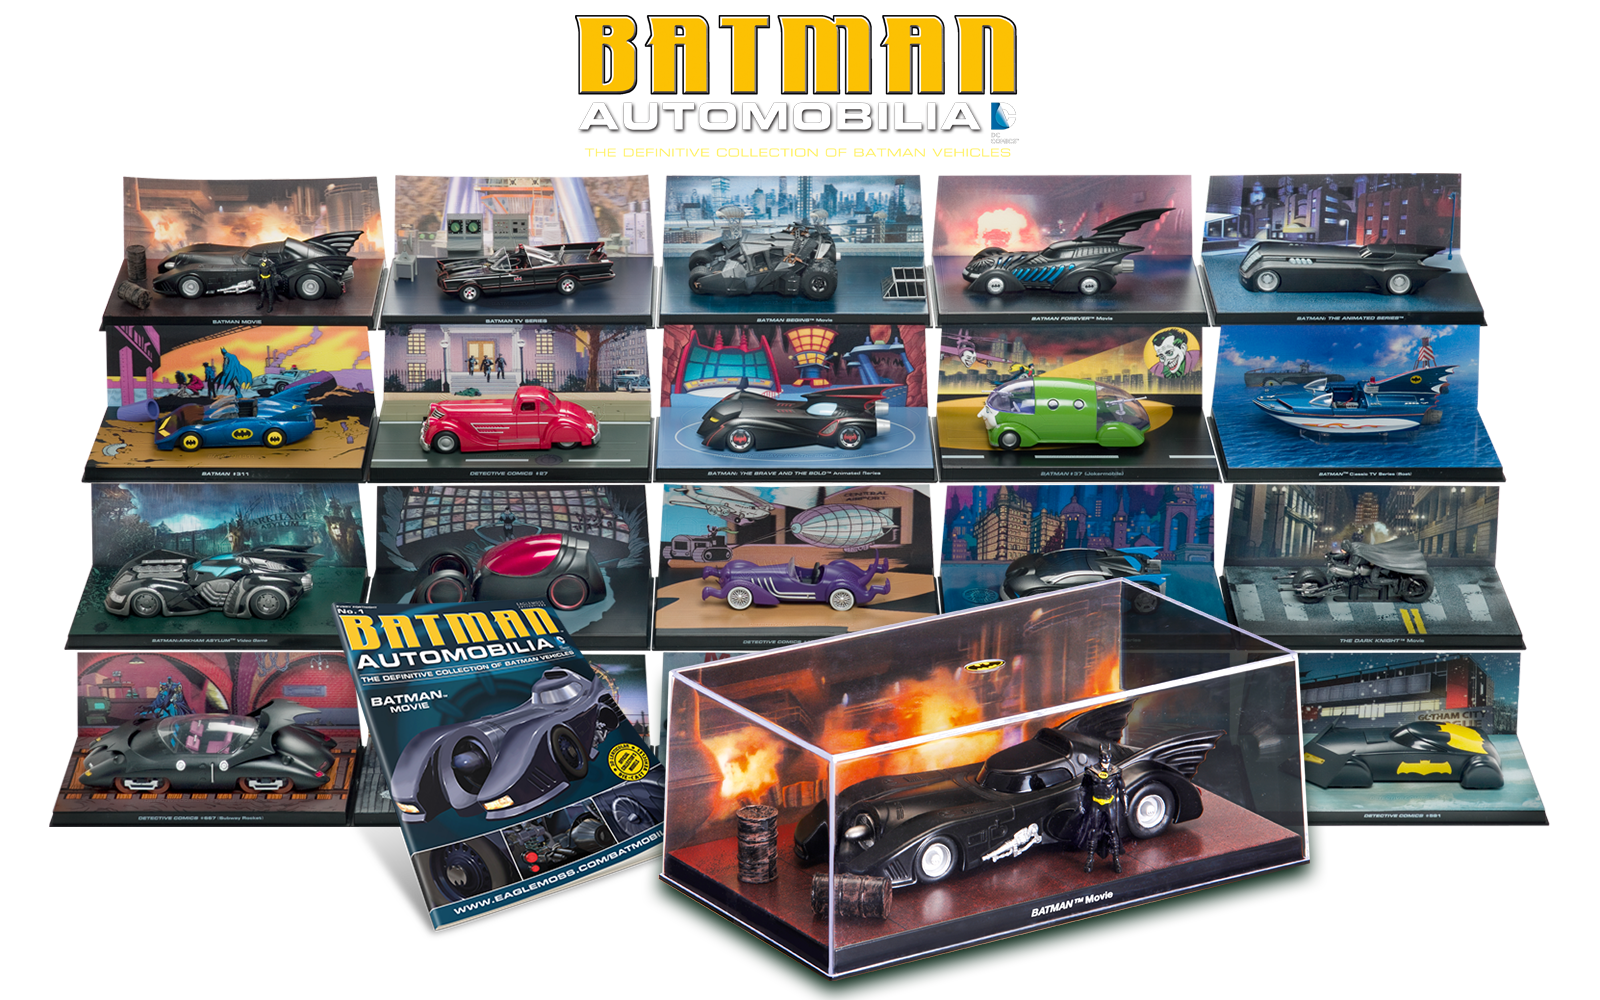 Batman Automobilia